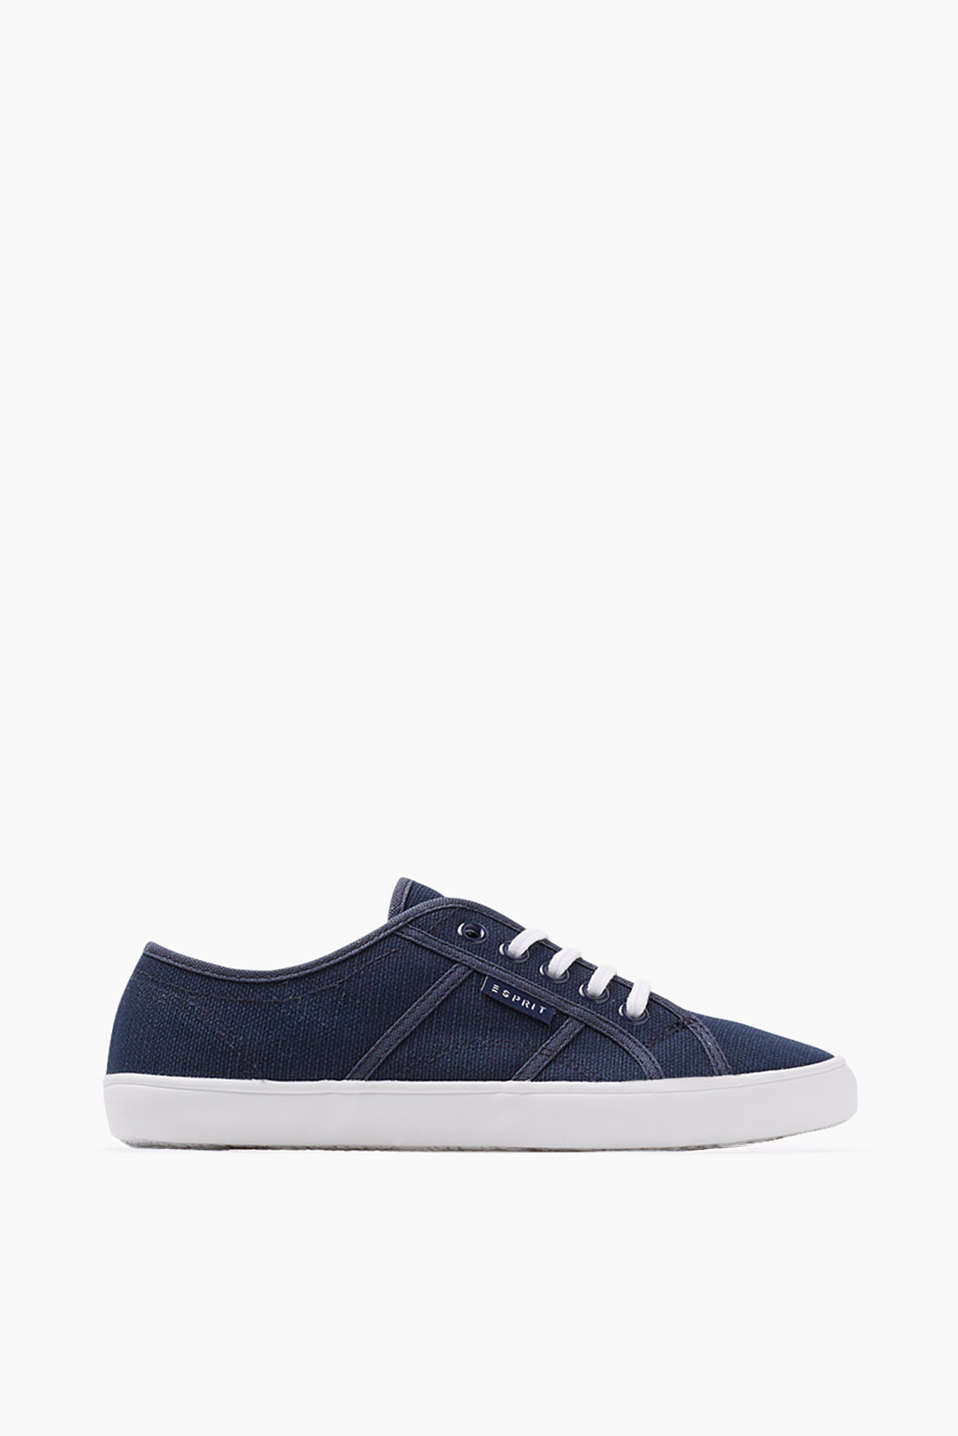 Basic lace-up trainers with a rubber sole, made of cotton canvas